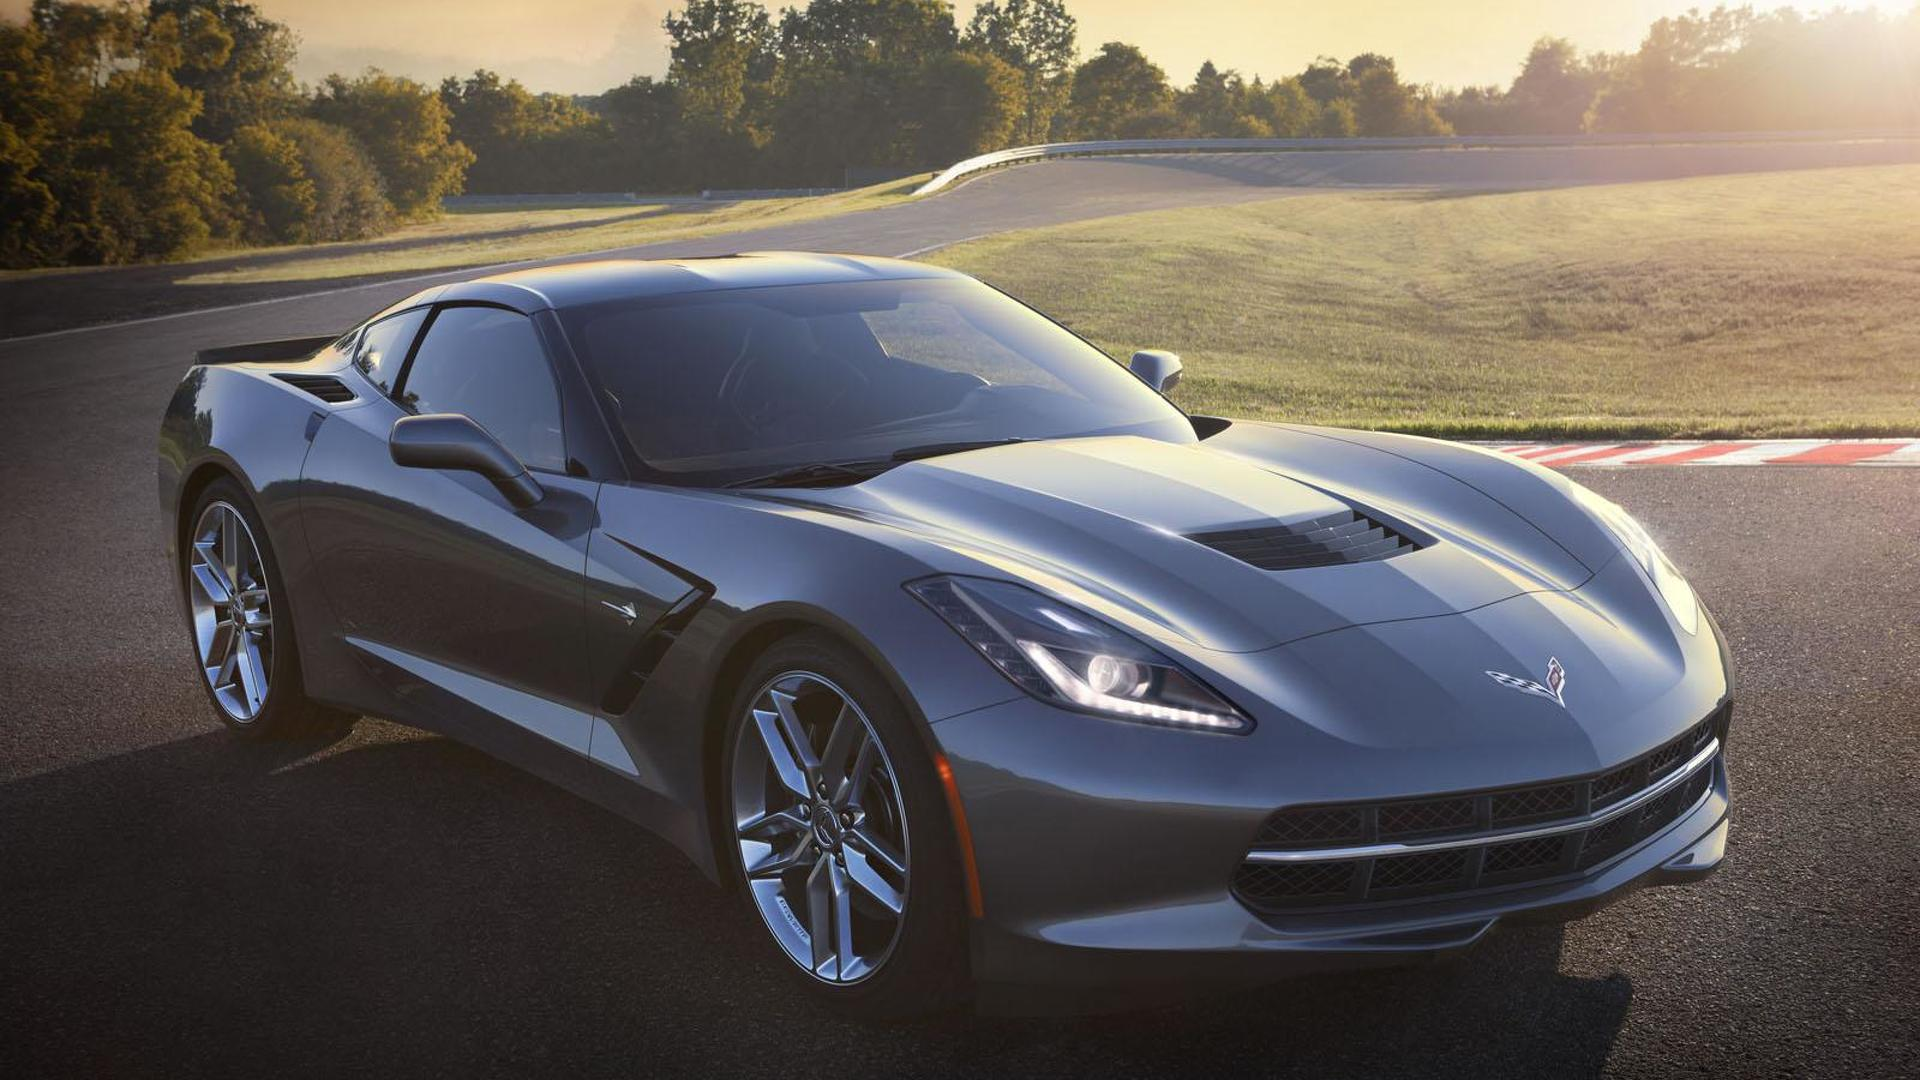 2014 Chevrolet Corvette Stingray will do 30 mpg in Eco mode